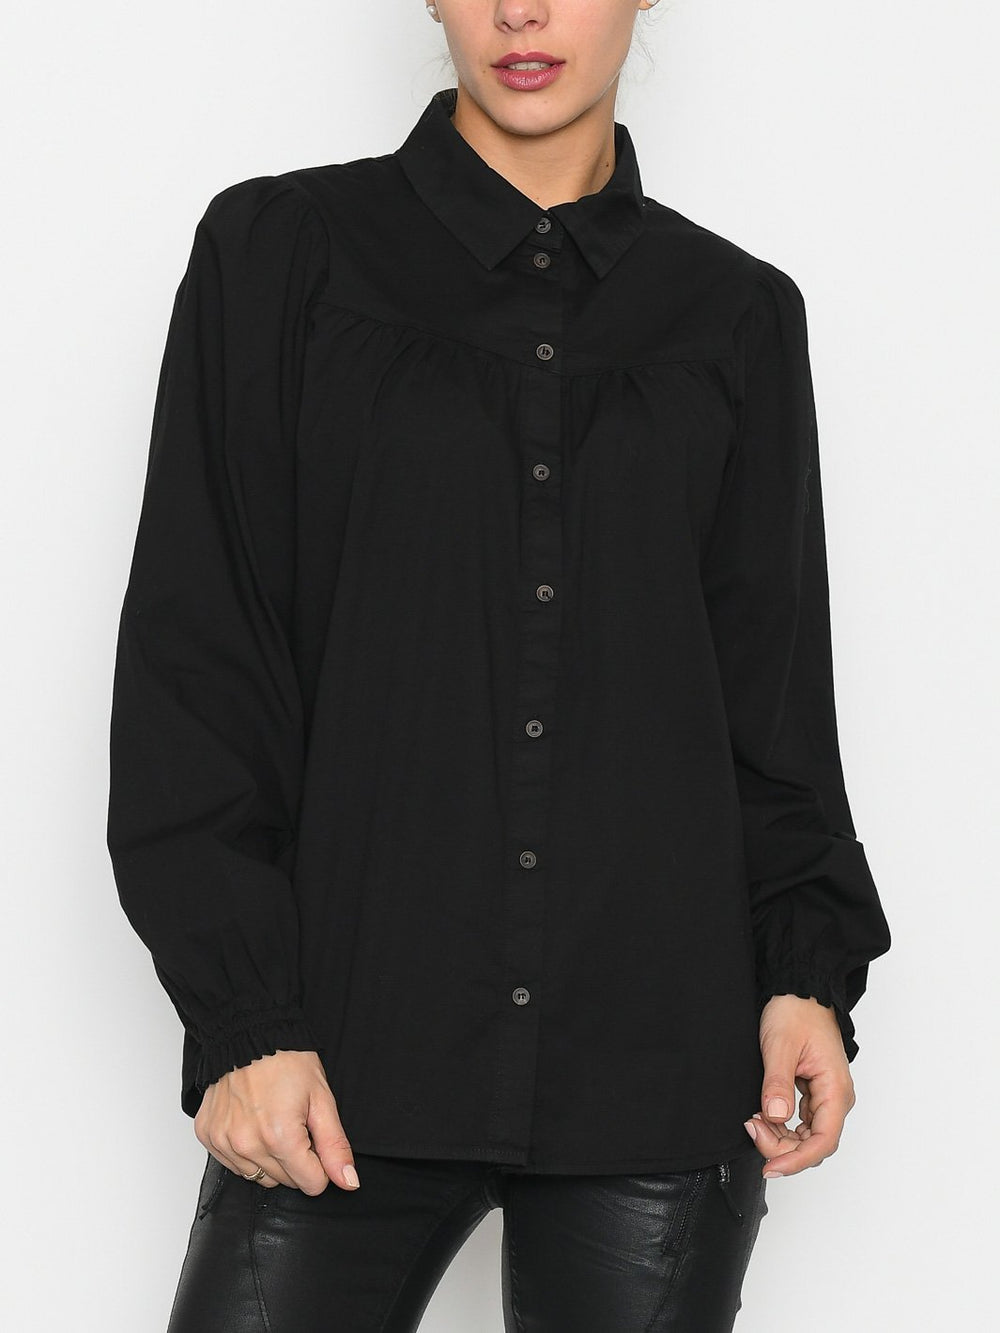 Luxzuz Sheilana shirt black - Online-Mode